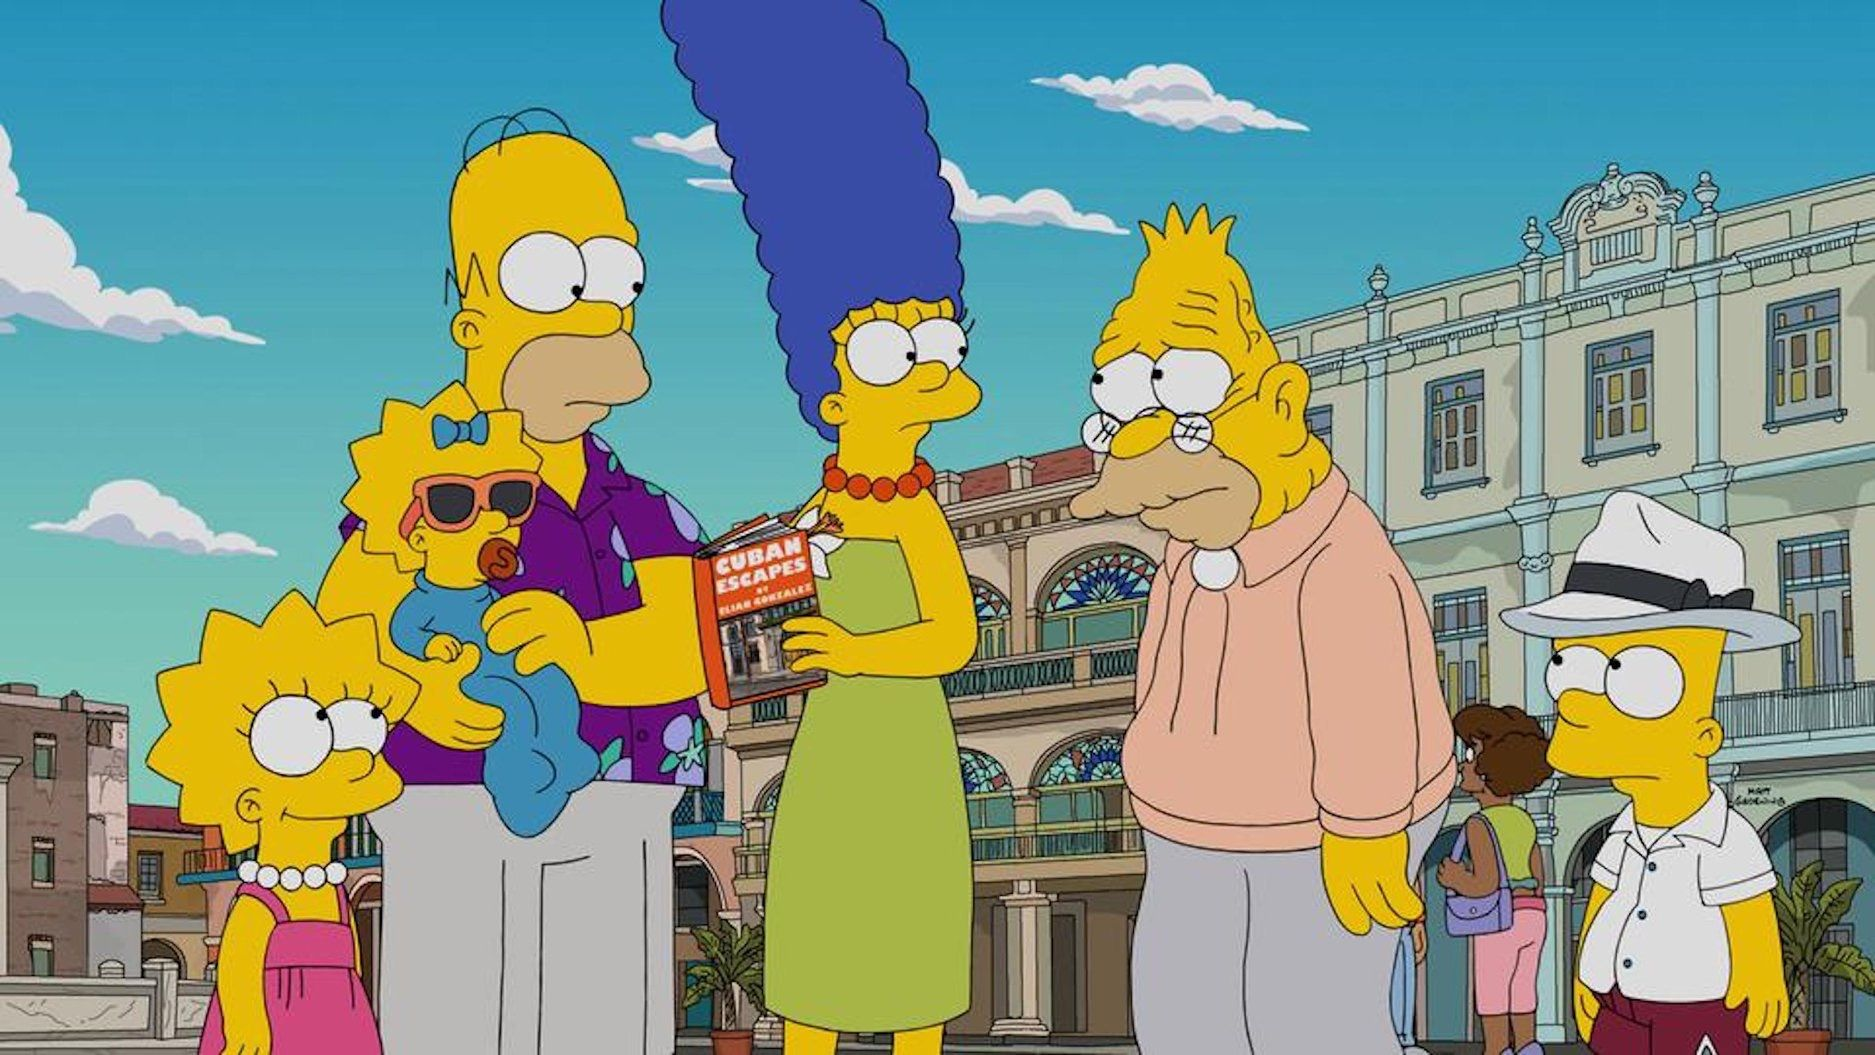 Pin de Sergio Andrés en The Simpsons en 2020 Los simpson